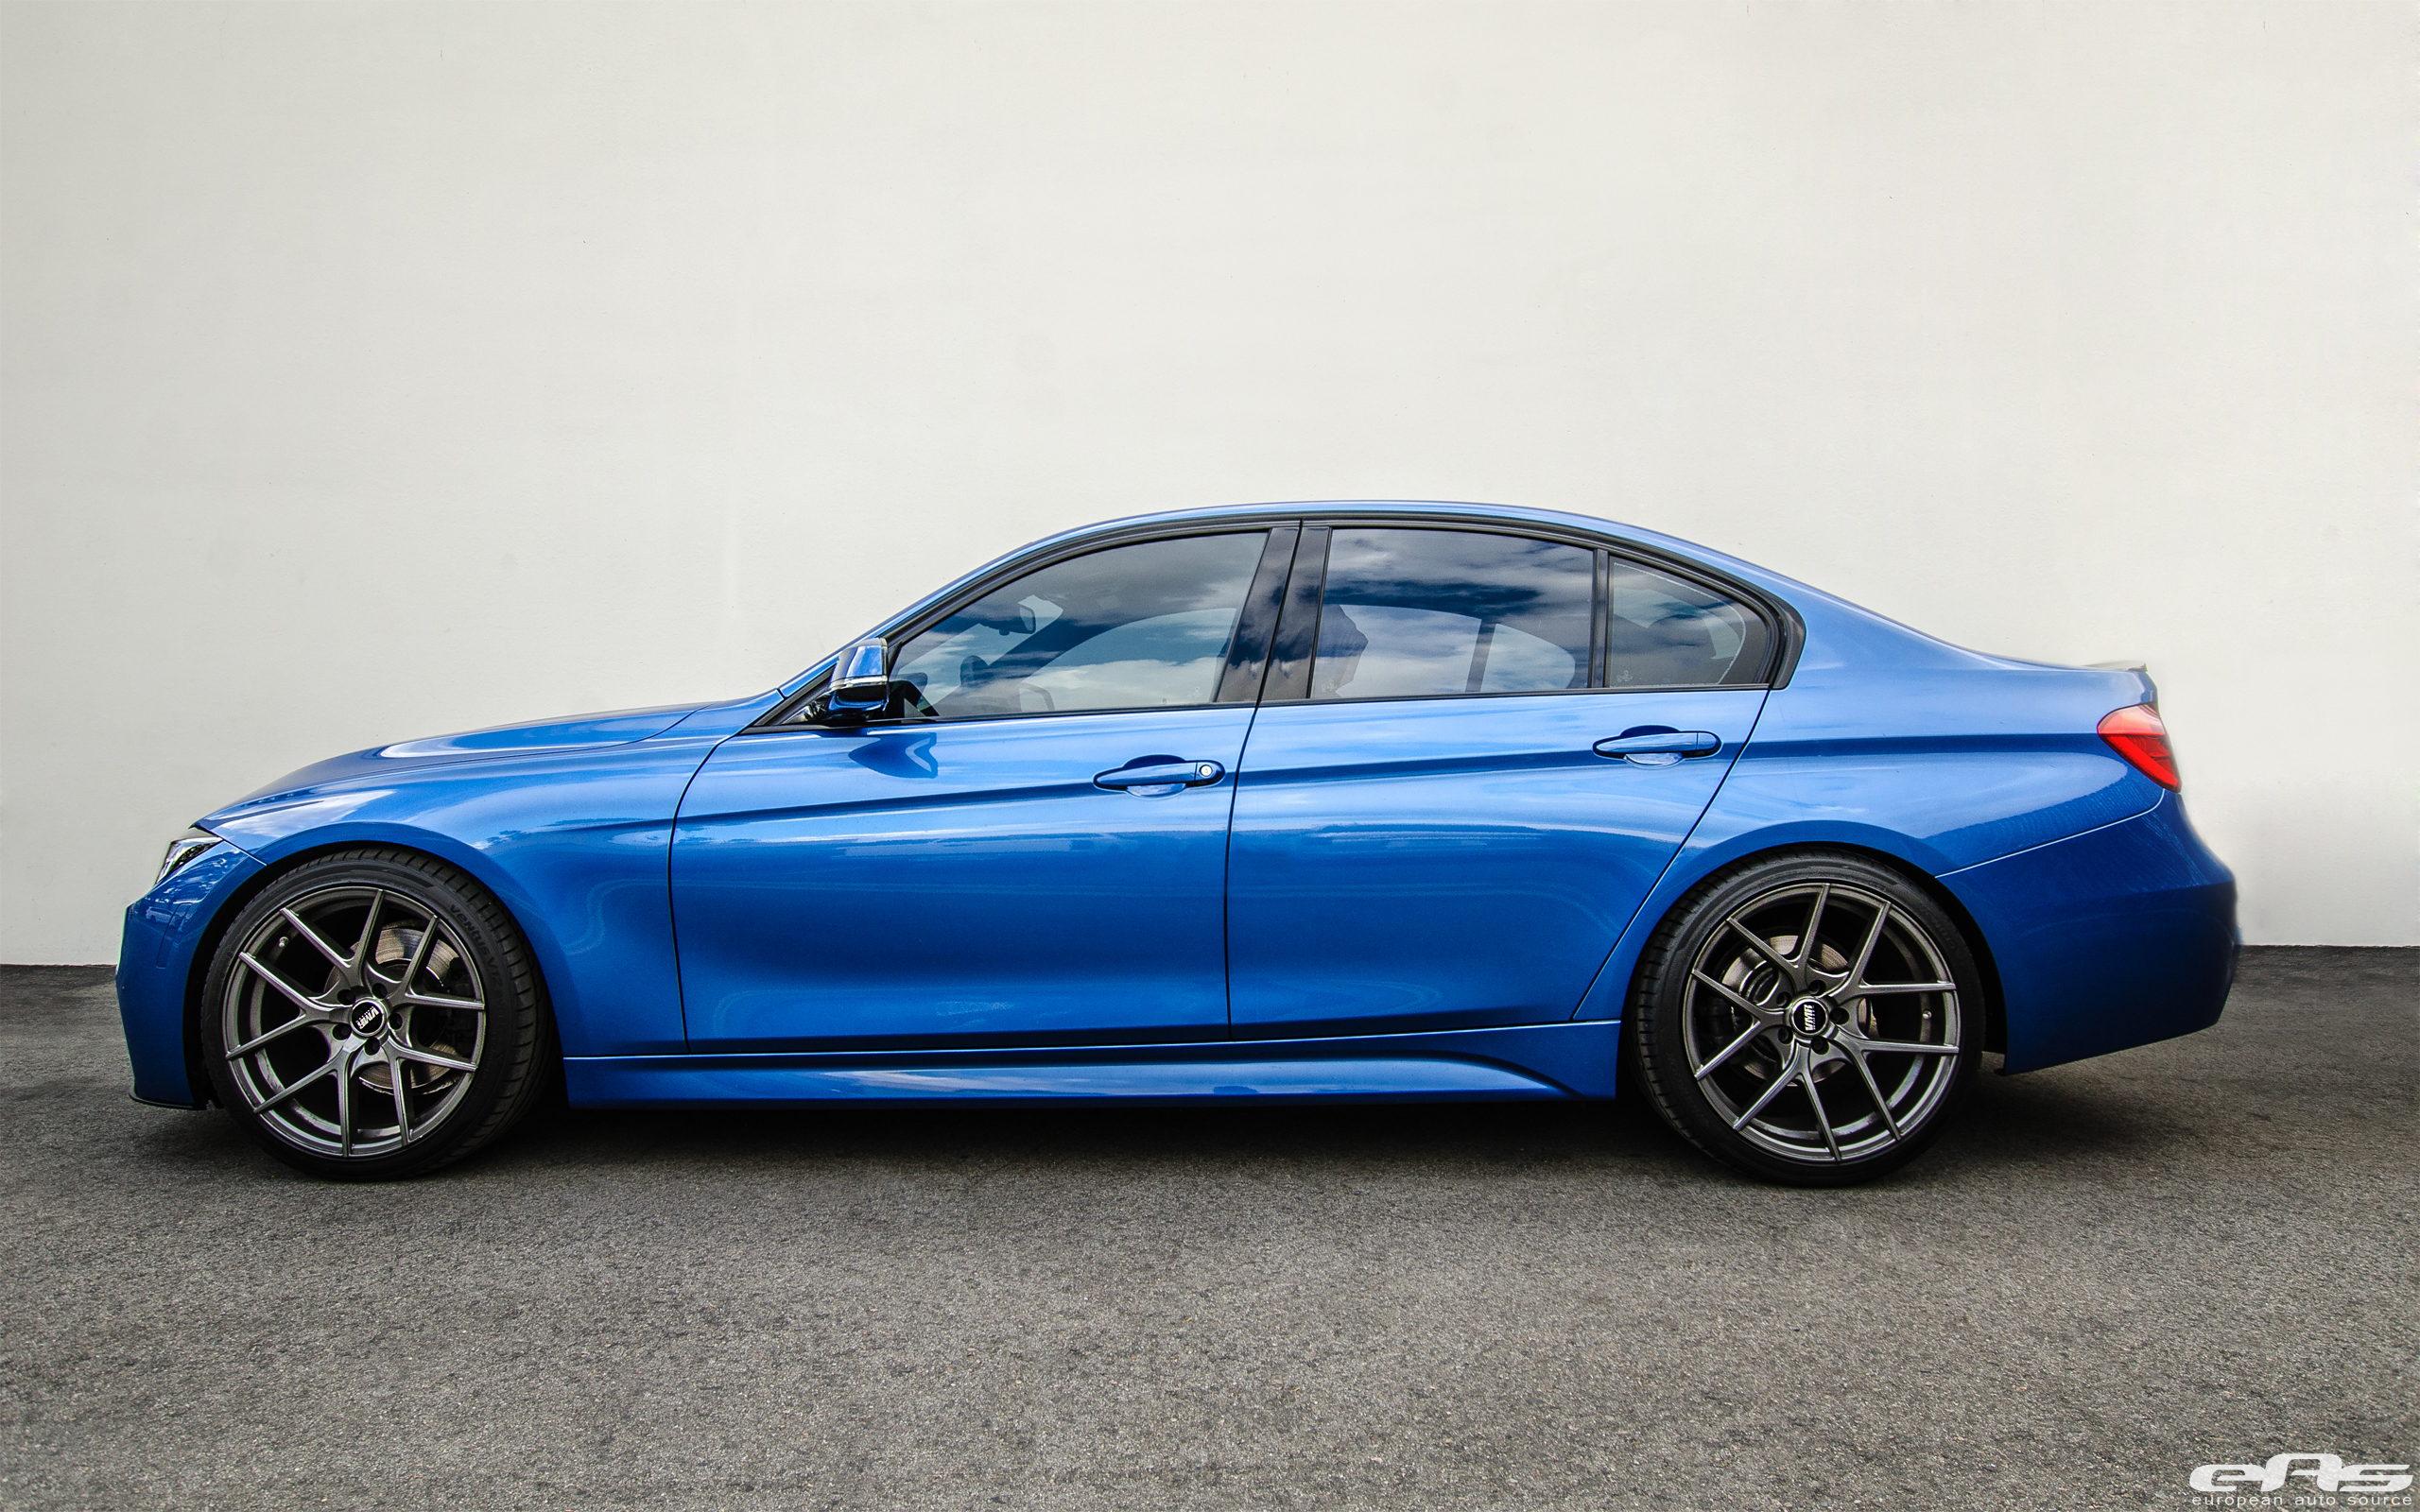 This Estoril Blue Bmw F30 328i Gets Some Visual Upgrades